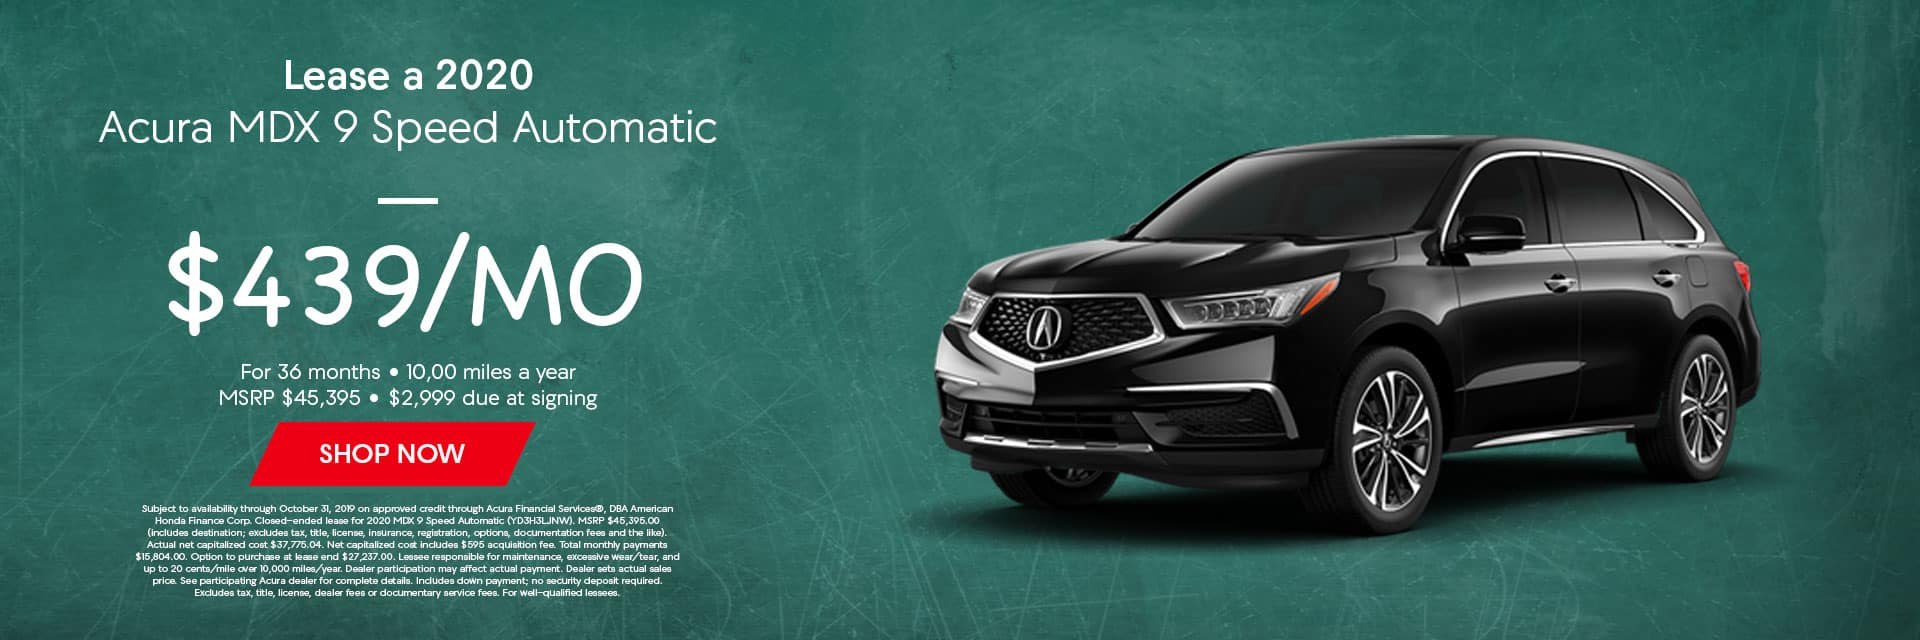 2020 MDX 9 Speed Automatic